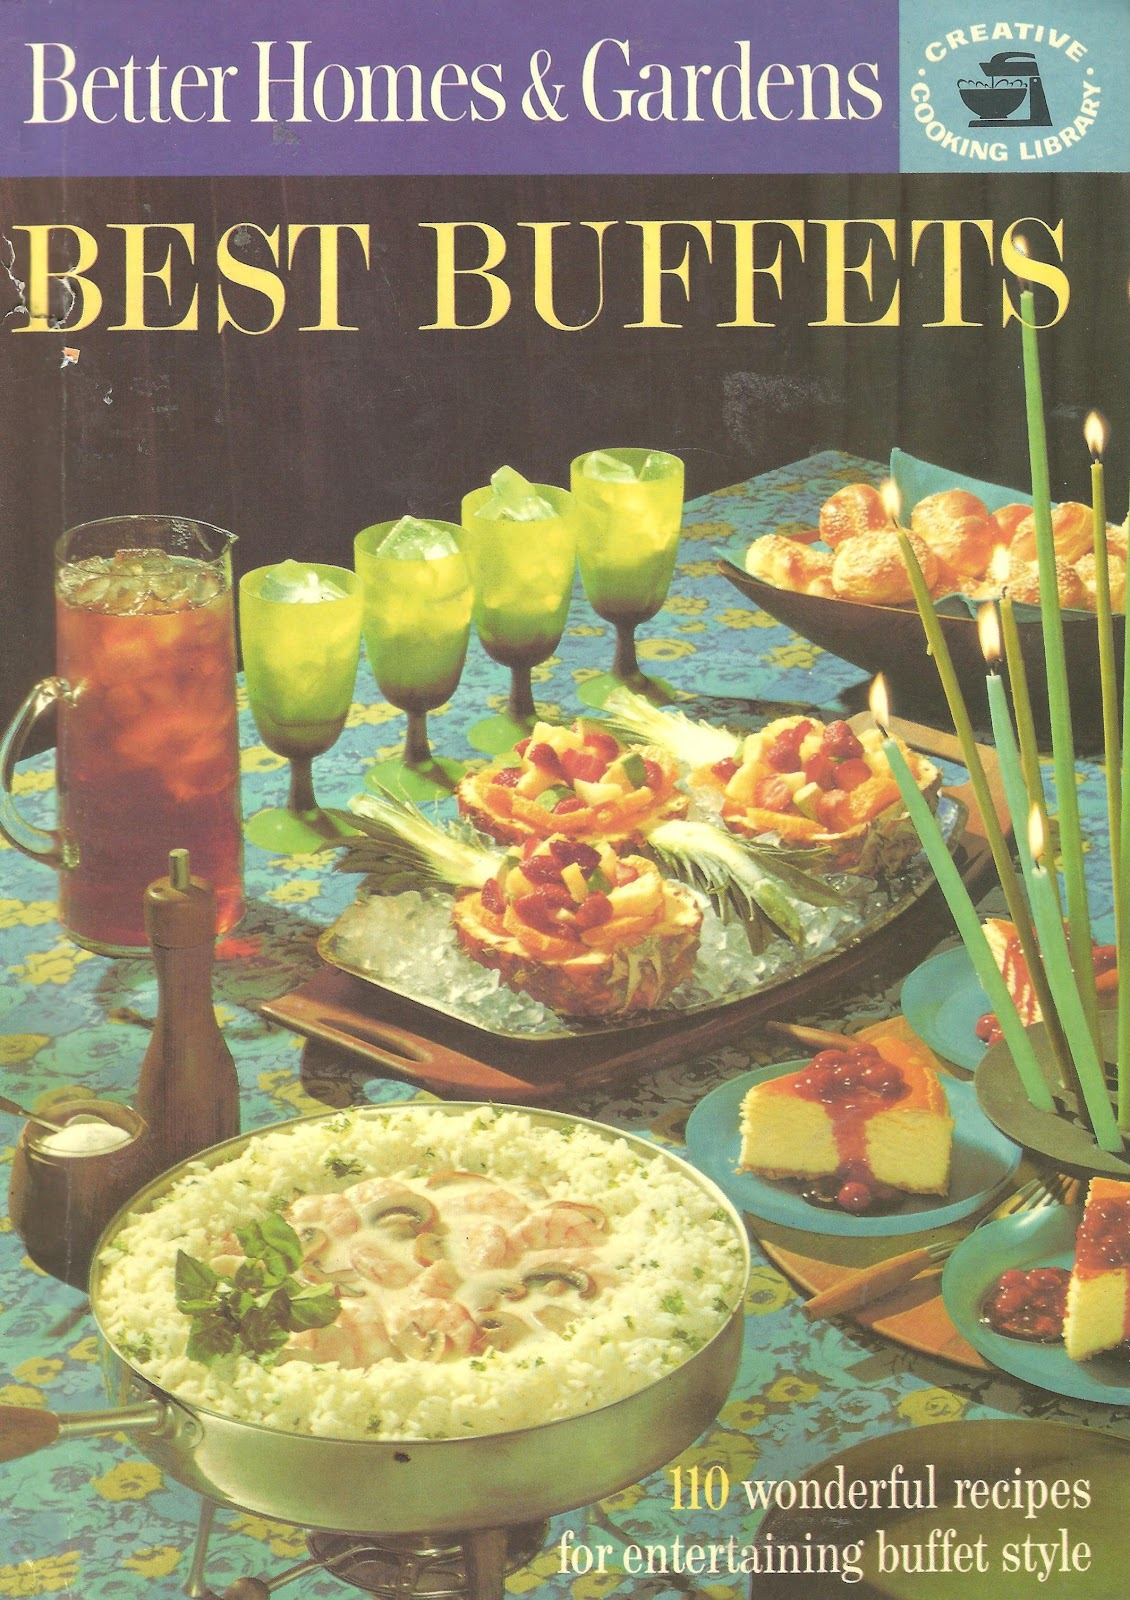 Bad and Ugly of Retro Food: The Bestest Buffets In One Book